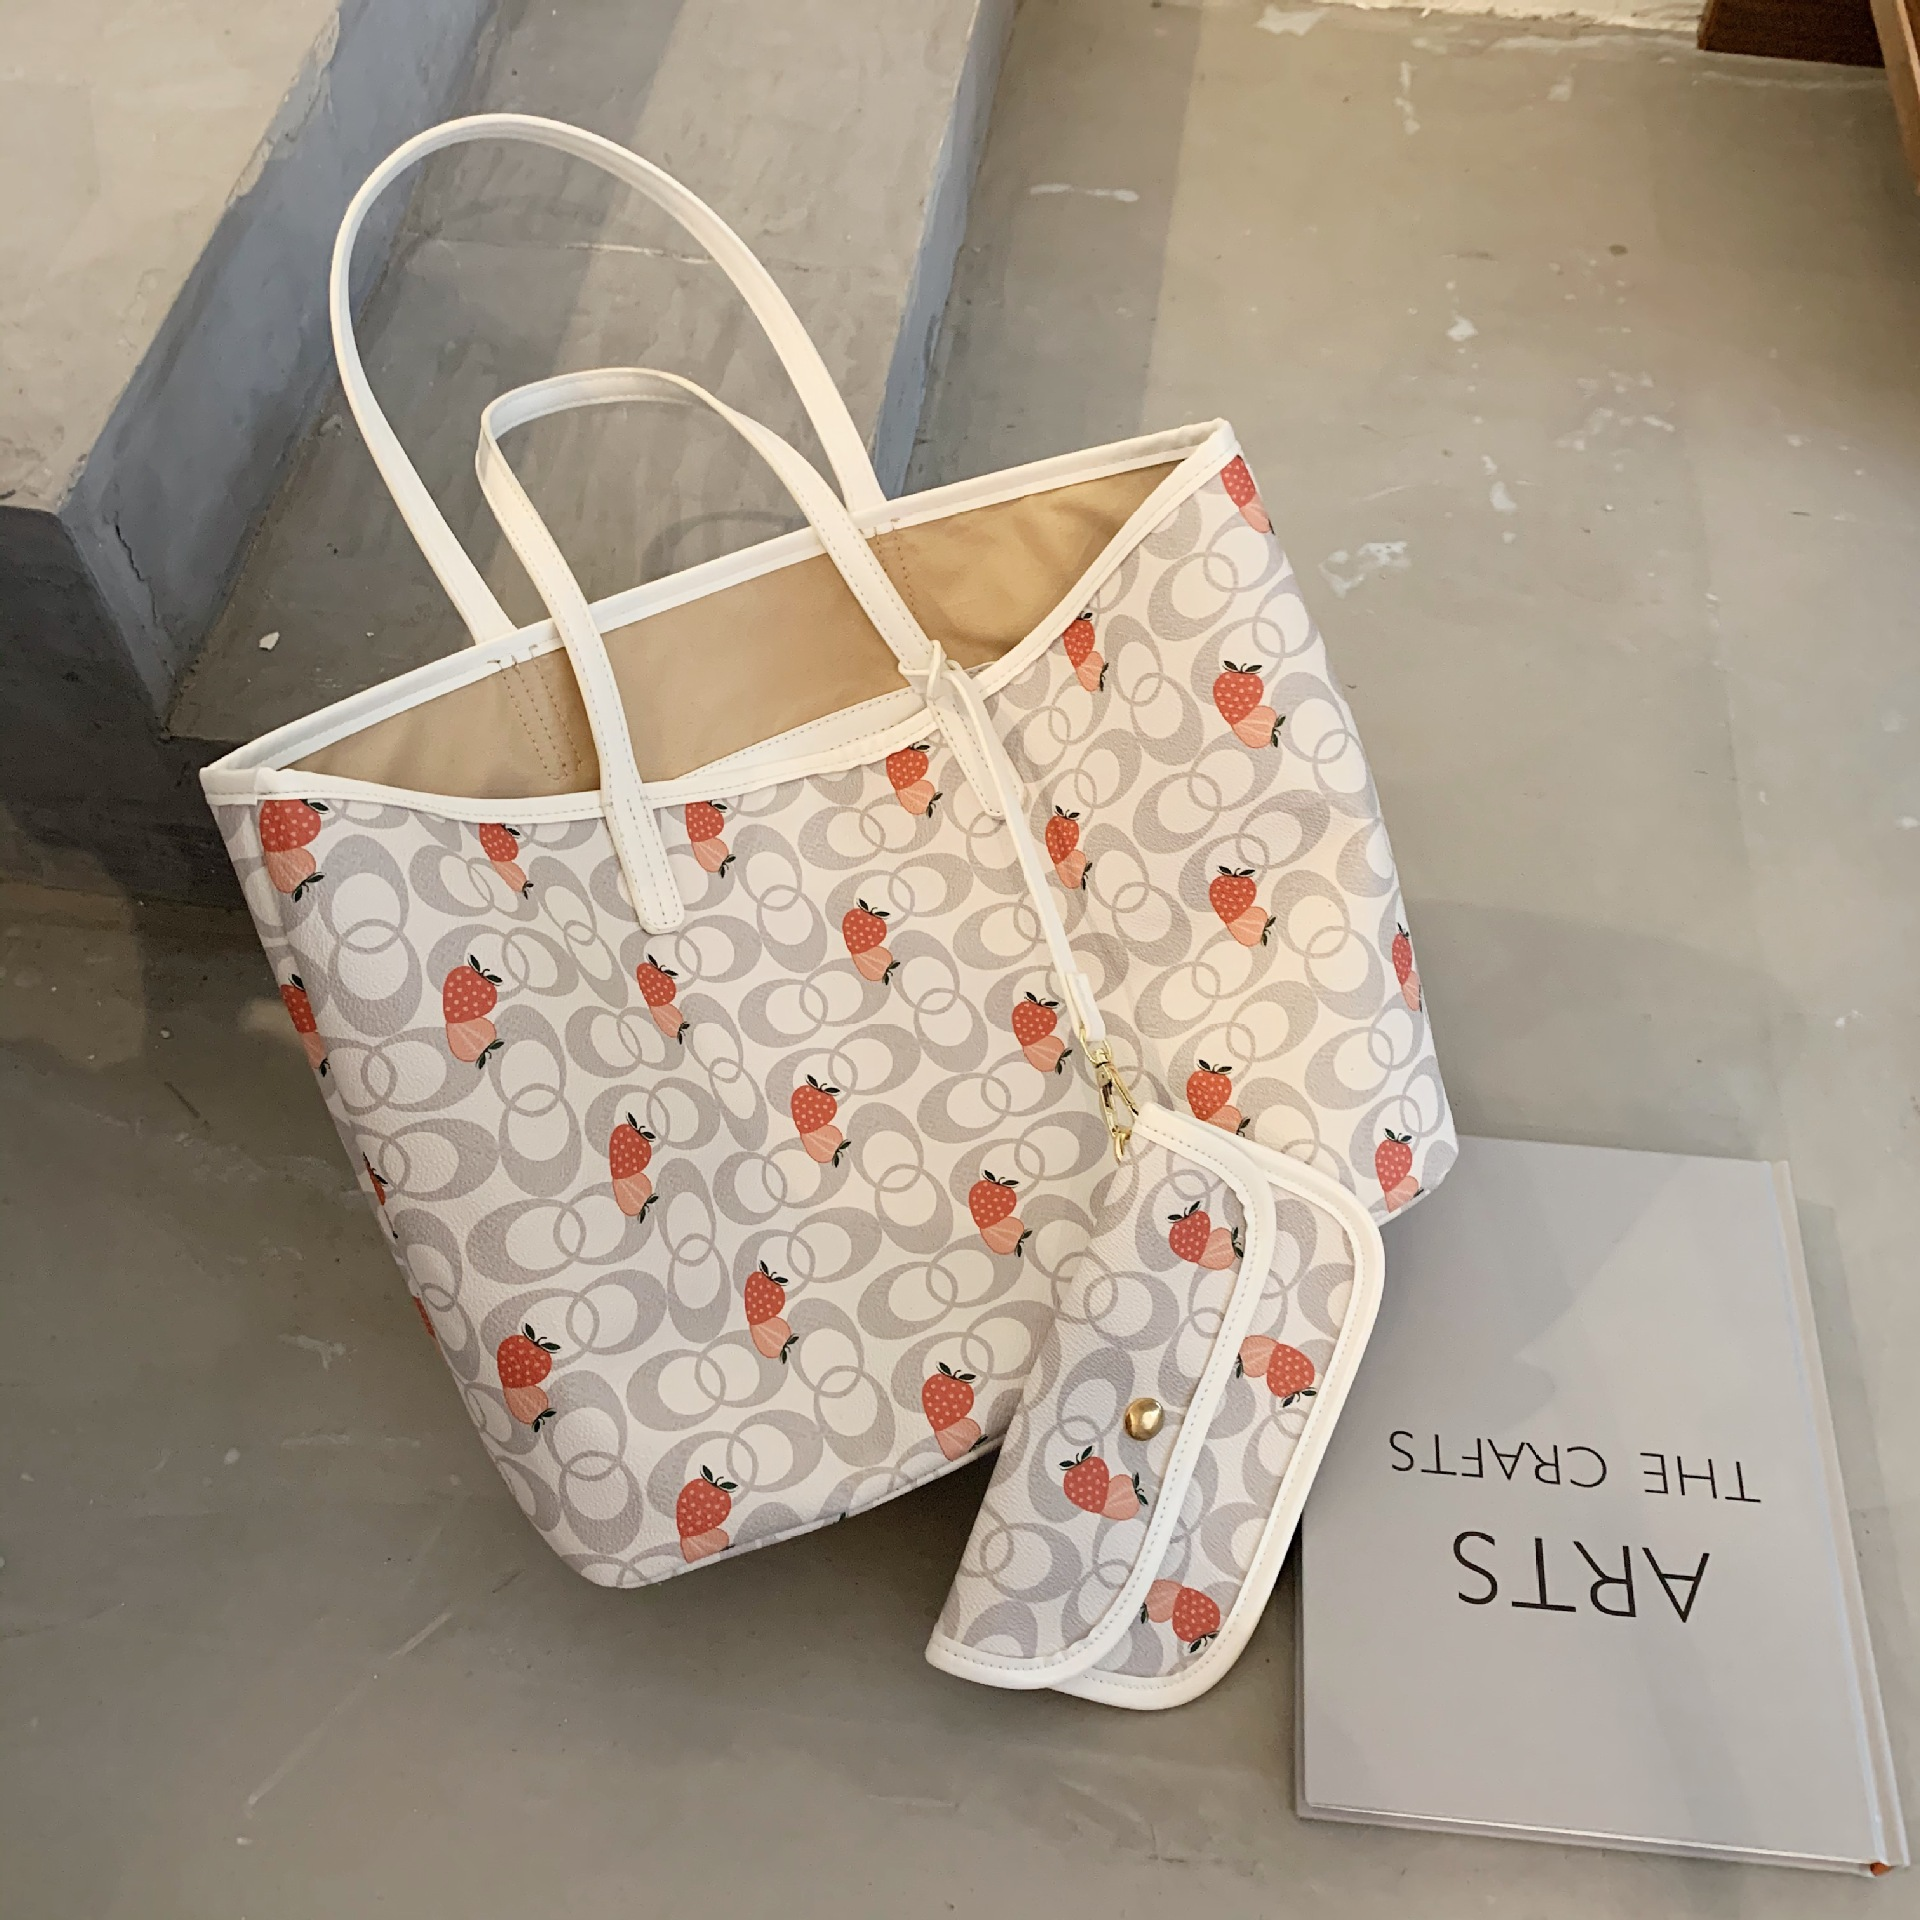 Simple Mass Shoulder WOMEN'S Bag 2020 Summer New Style Fashion Versitile Fashion Network Red Printing Toth Large Bag(China)